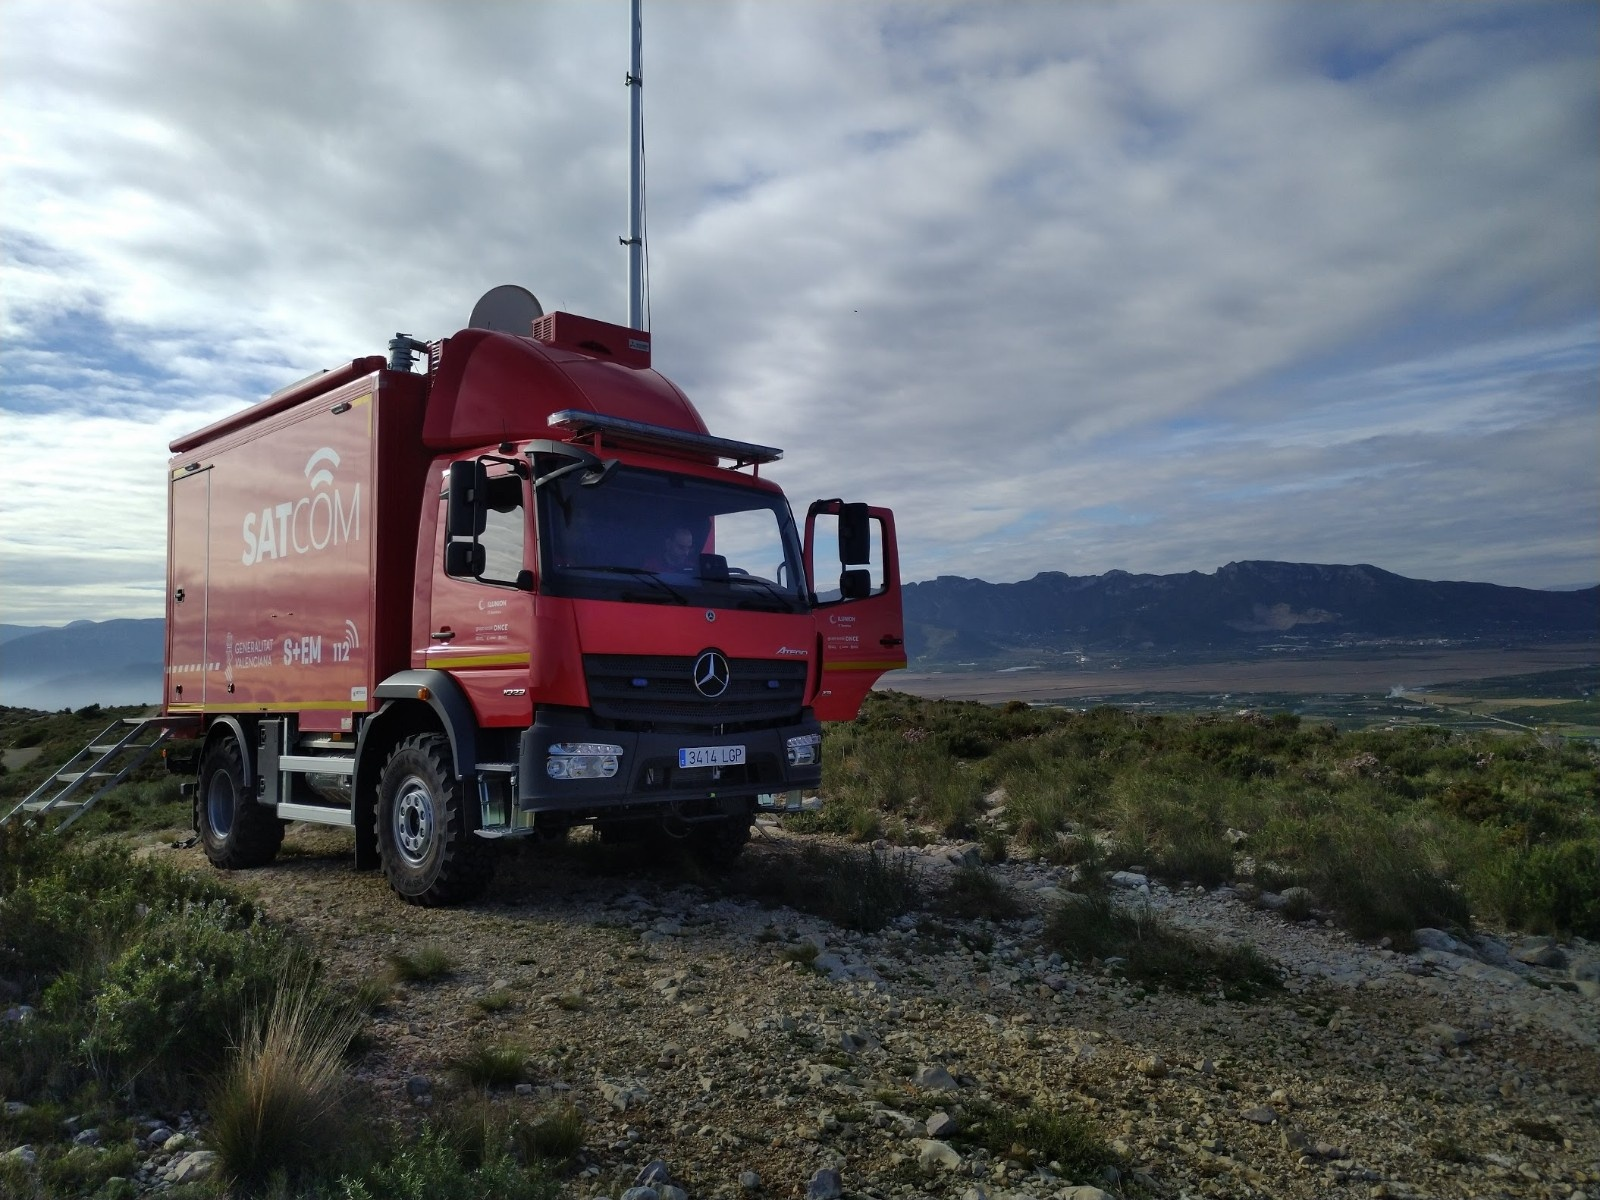 The new Mobile Communications Unit for the emergency service (112) of the Generalitat Valenciana celebrates its first year of operation